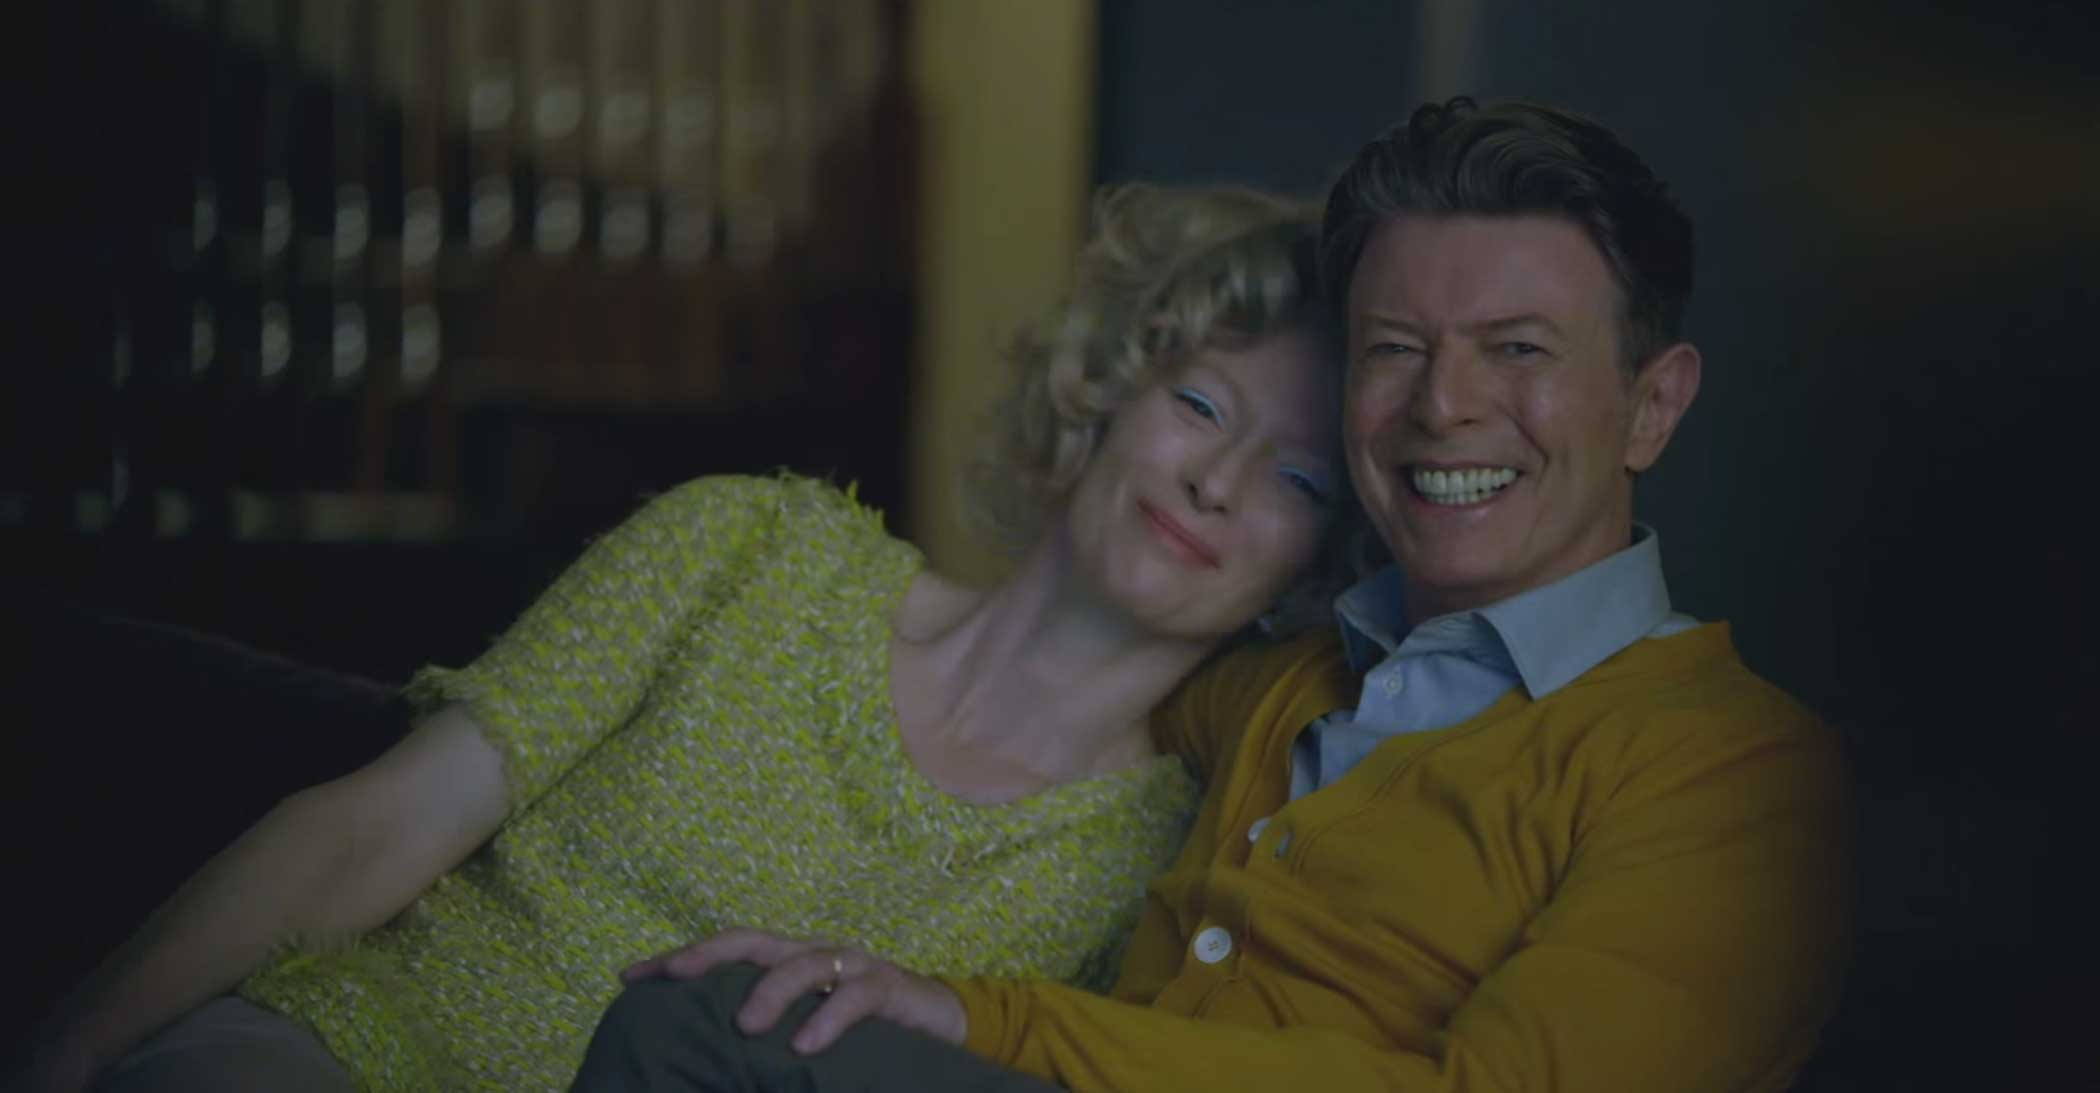 Tilda Swinton and David Bowie in a still from Bowie's video for  The Stars (Are Out Tonight)  in 2013.